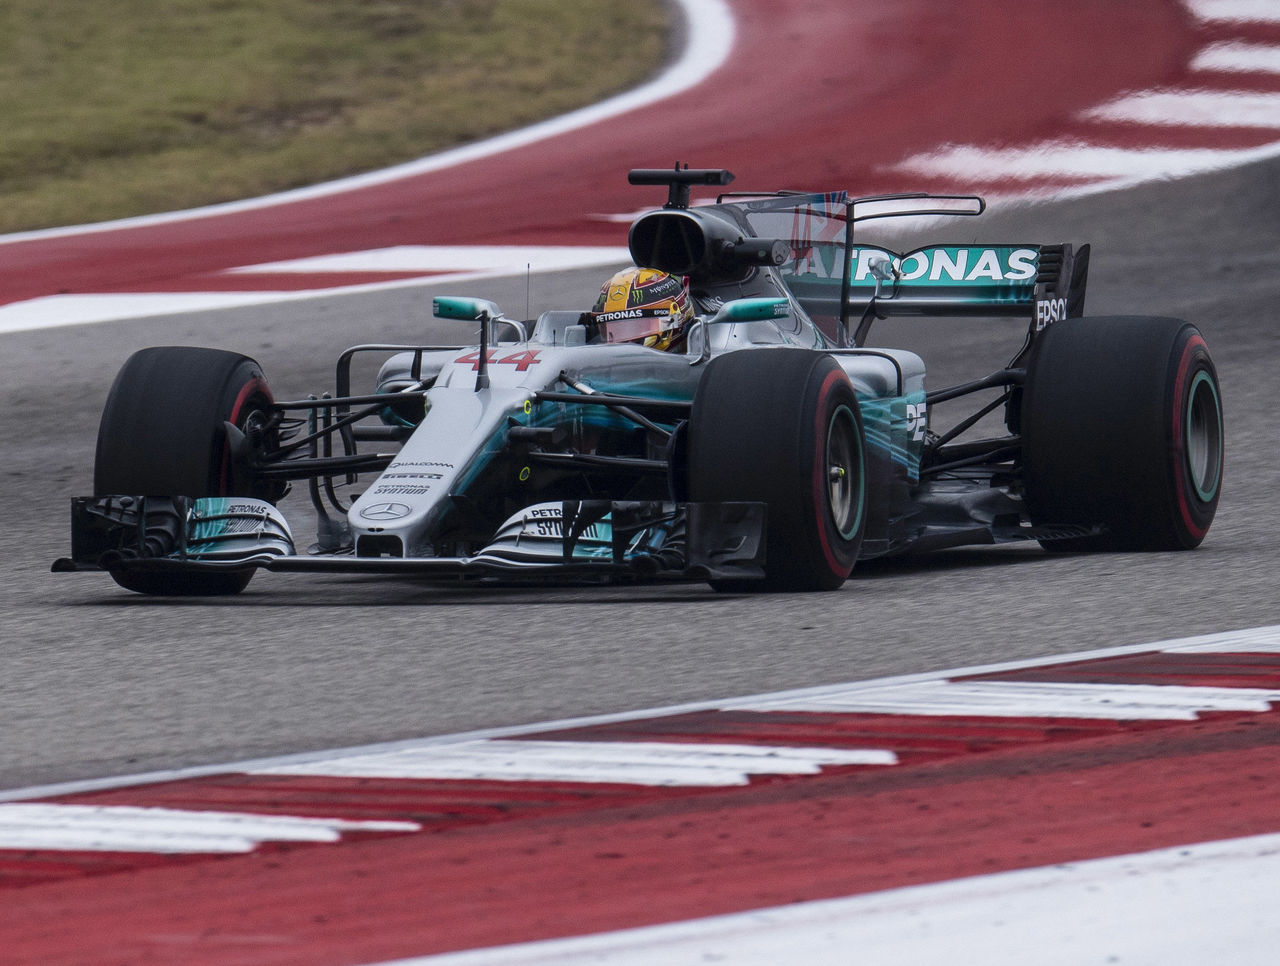 Cropped 2017 10 20t171156z 919485019 nocid rtrmadp 3 formula one united states grand prix practice